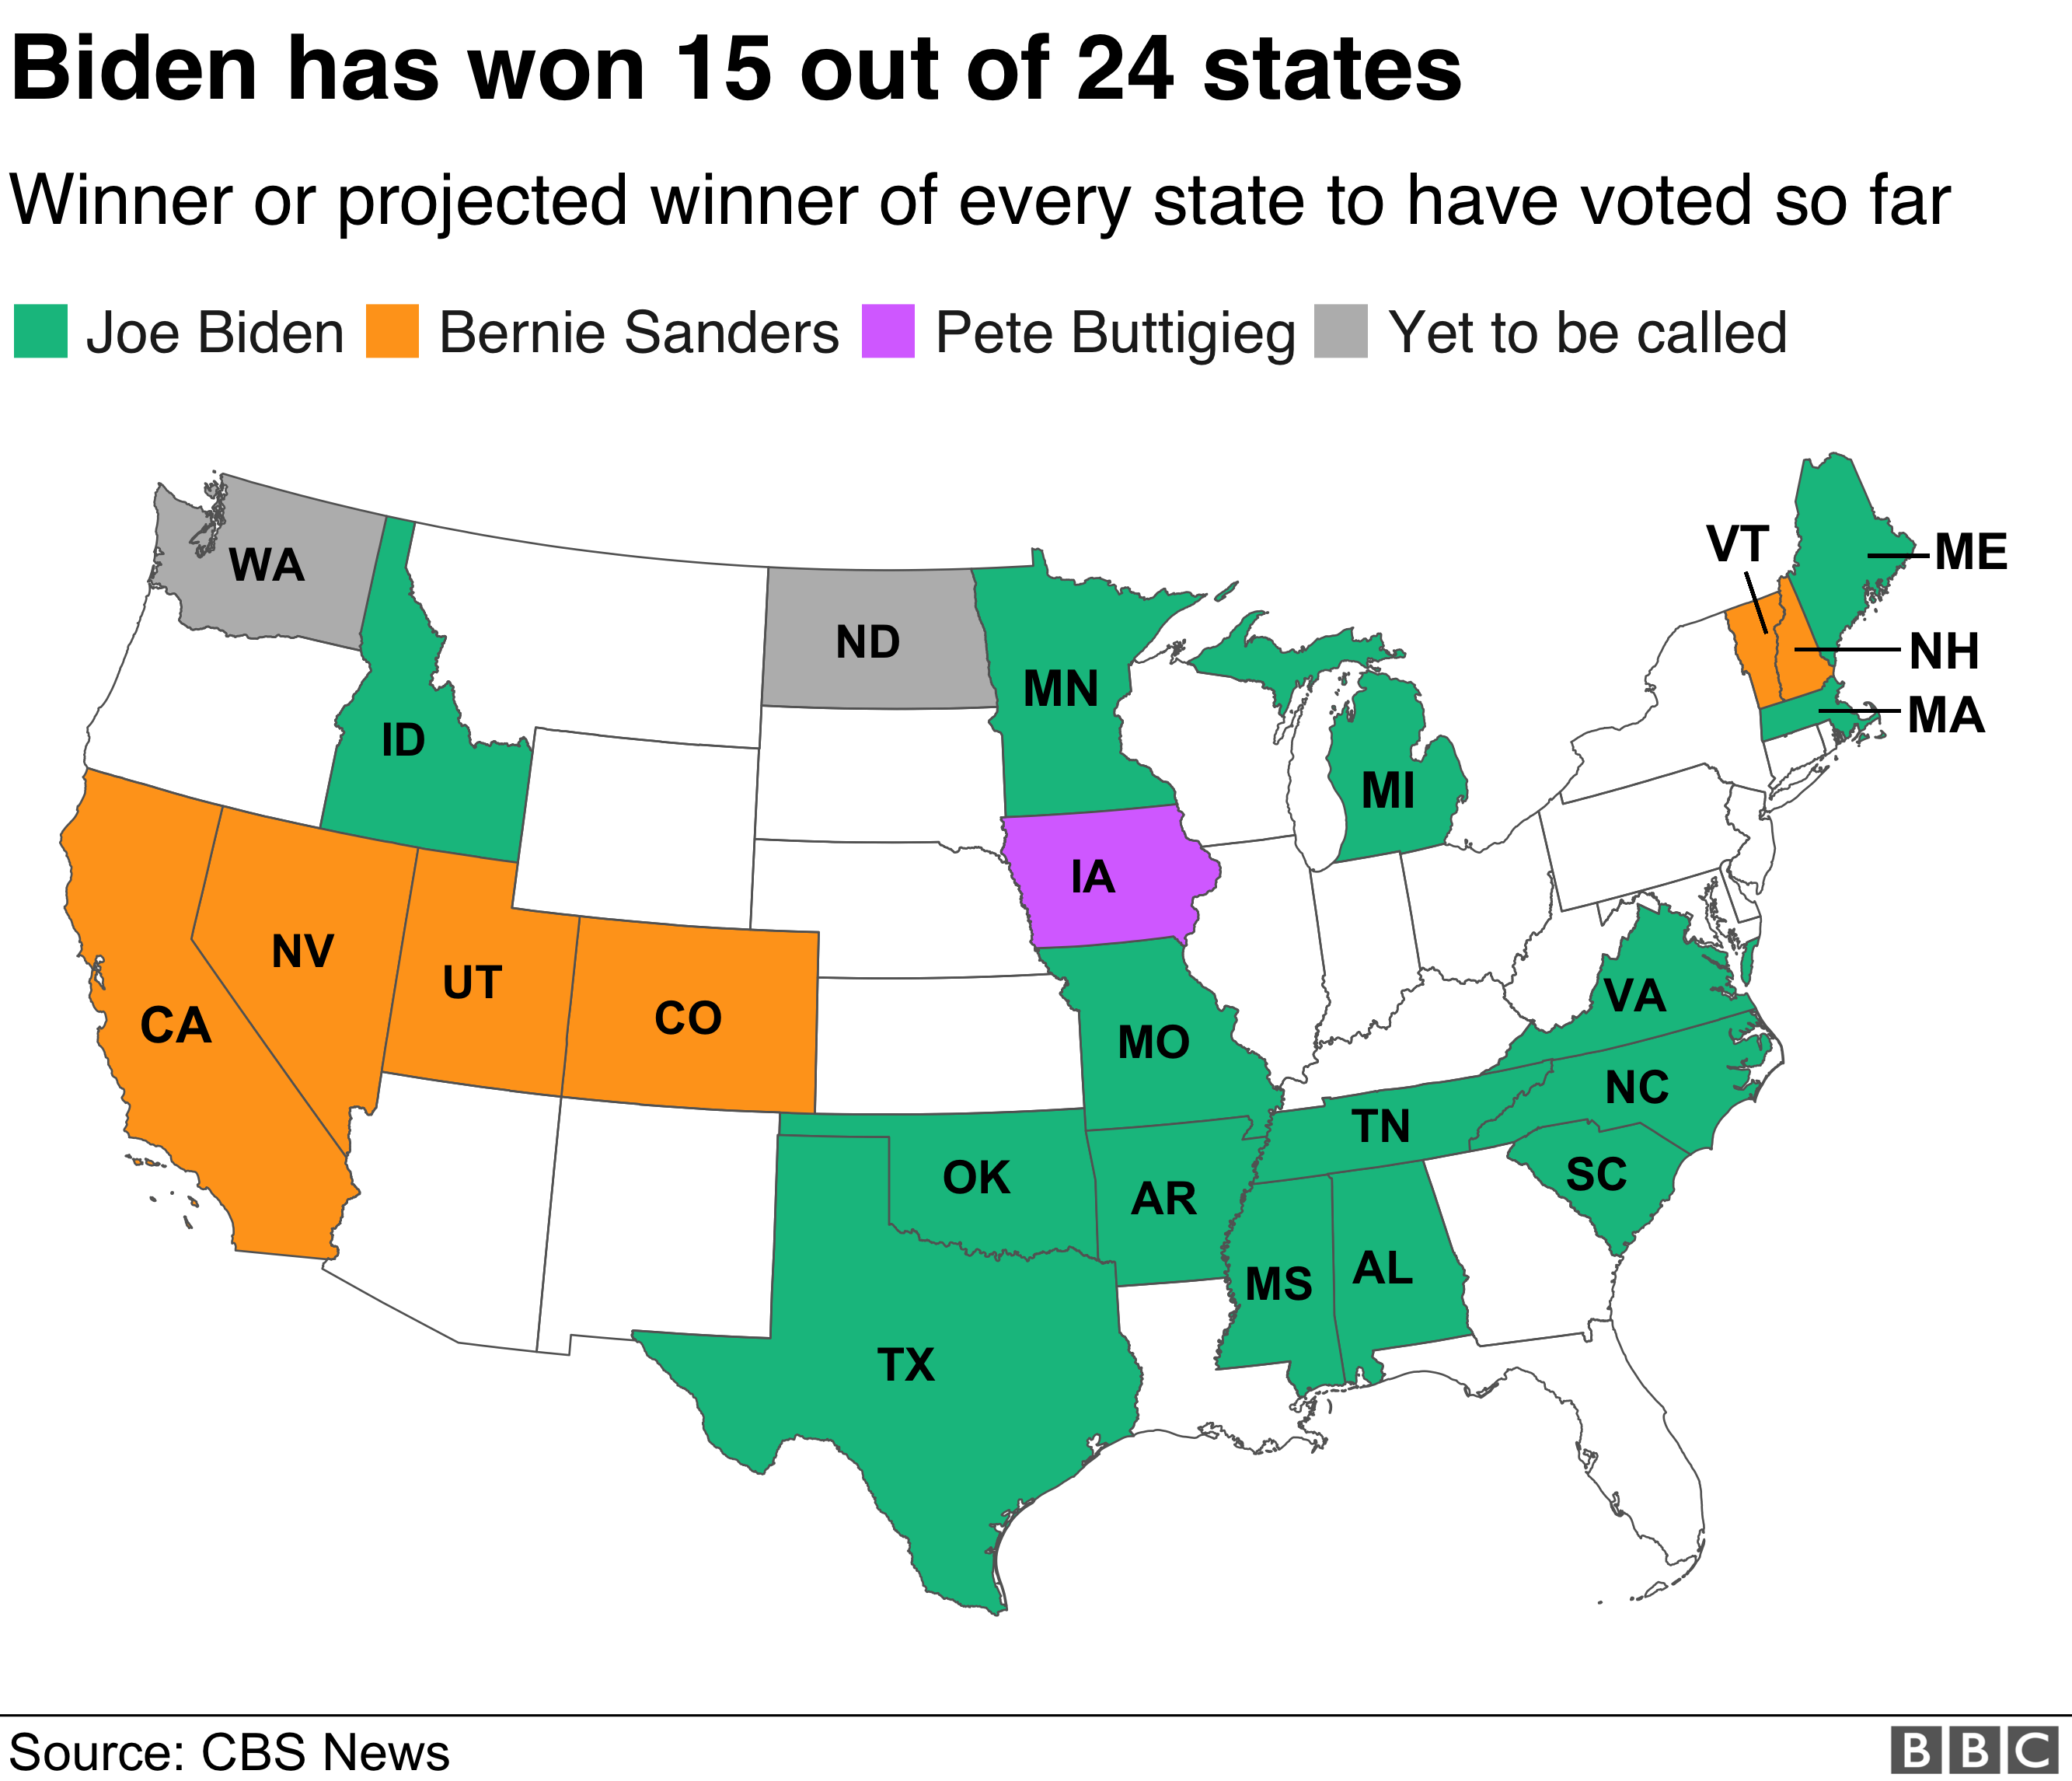 Map showing who has won each of the states that has voted so far